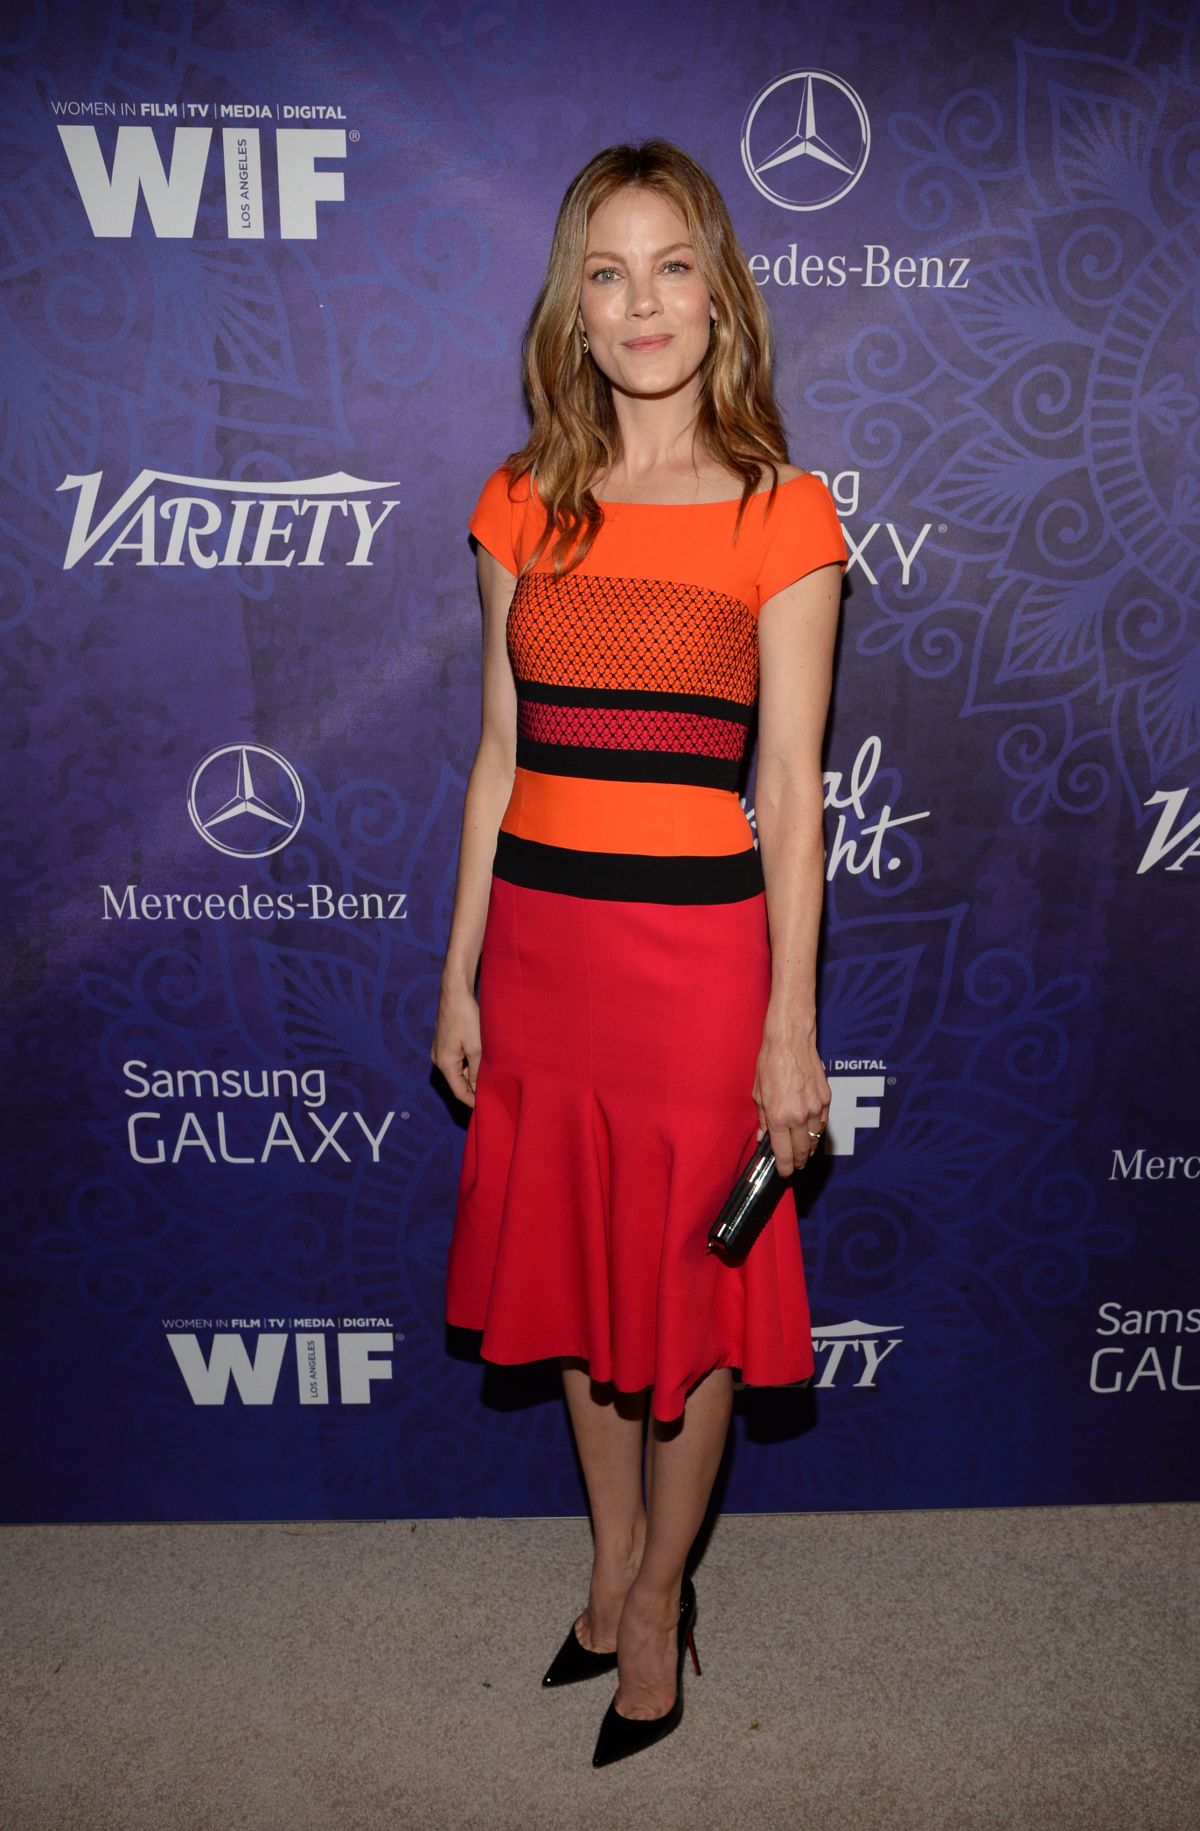 MICHELLE MONAGHAN at Variety and Women in Film Emmy Nominee Celebration